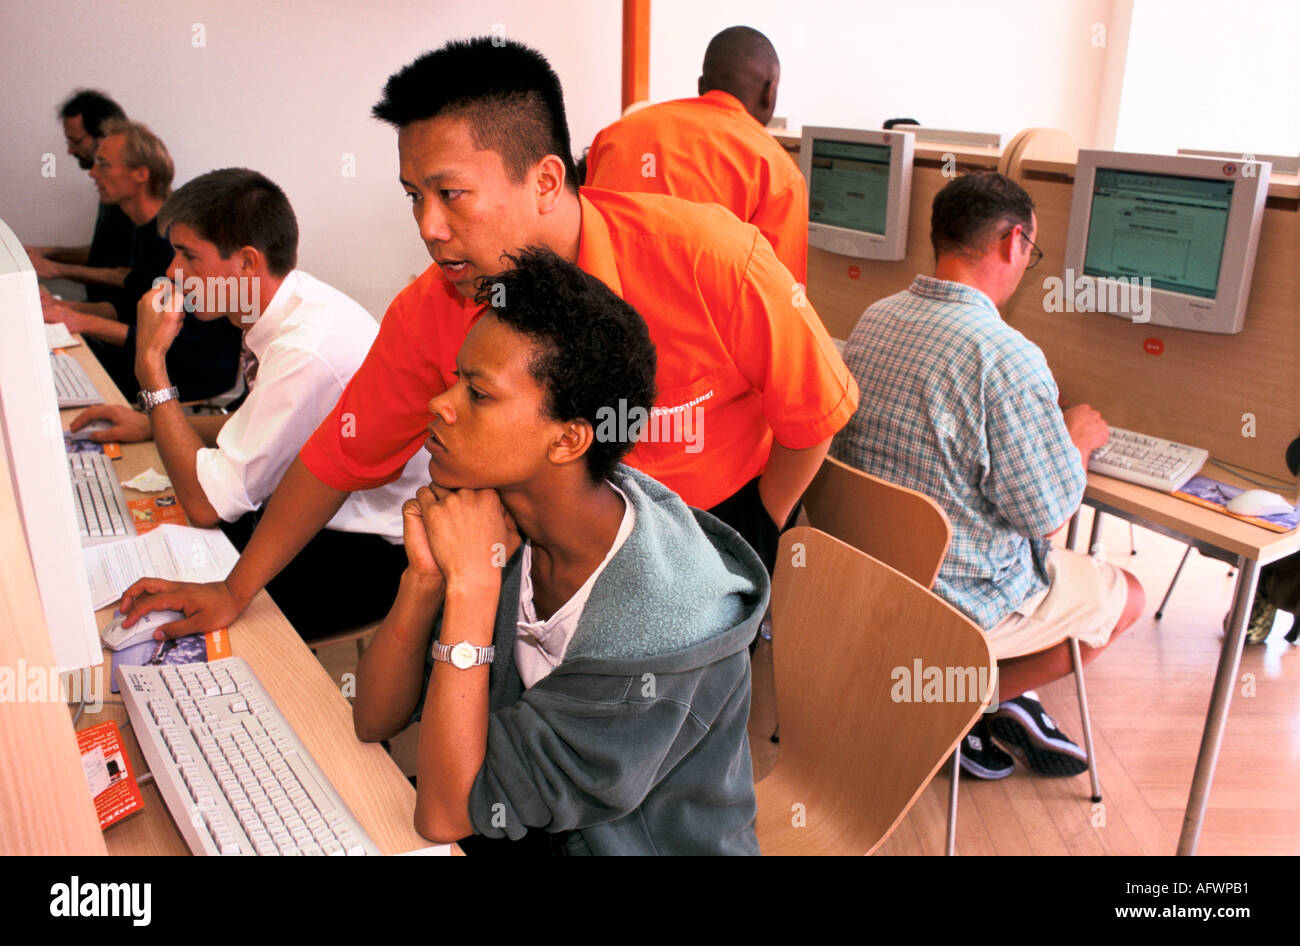 EASY EVERYTHING INTERNET CAFE VICTORIA  LONDON UK HELP IS AVAILABLE FROM THE  MANY TECHNICIANS 1999 - Stock Image